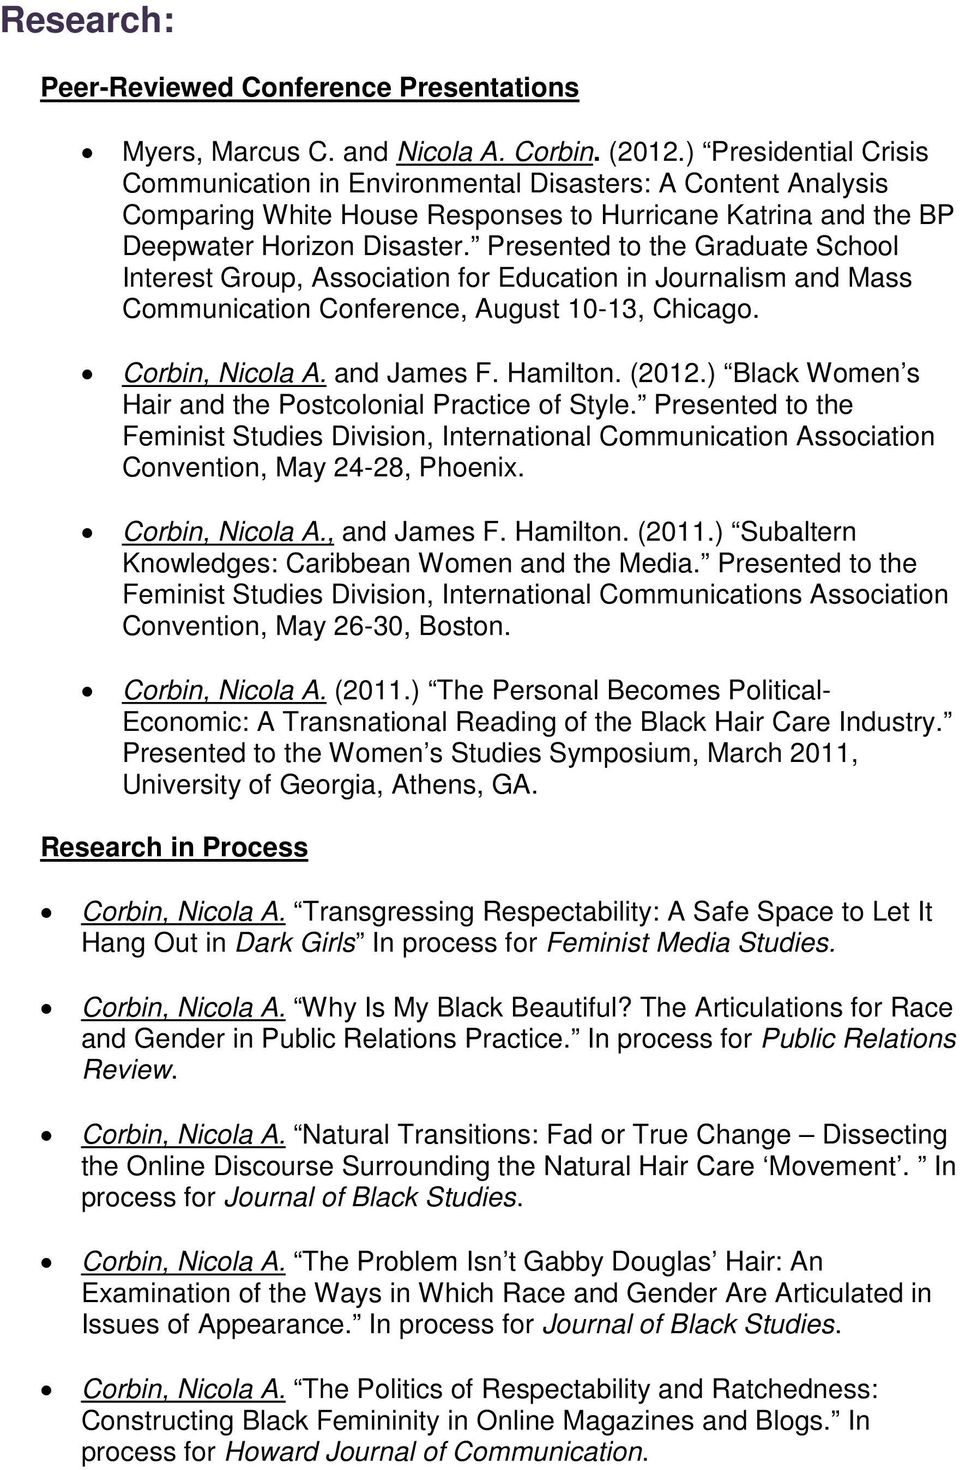 Presented to the Graduate School Interest Group, Association for Education in Journalism and Mass Communication Conference, August 10-13, Chicago. Corbin, Nicola A. and James F. Hamilton. (2012.